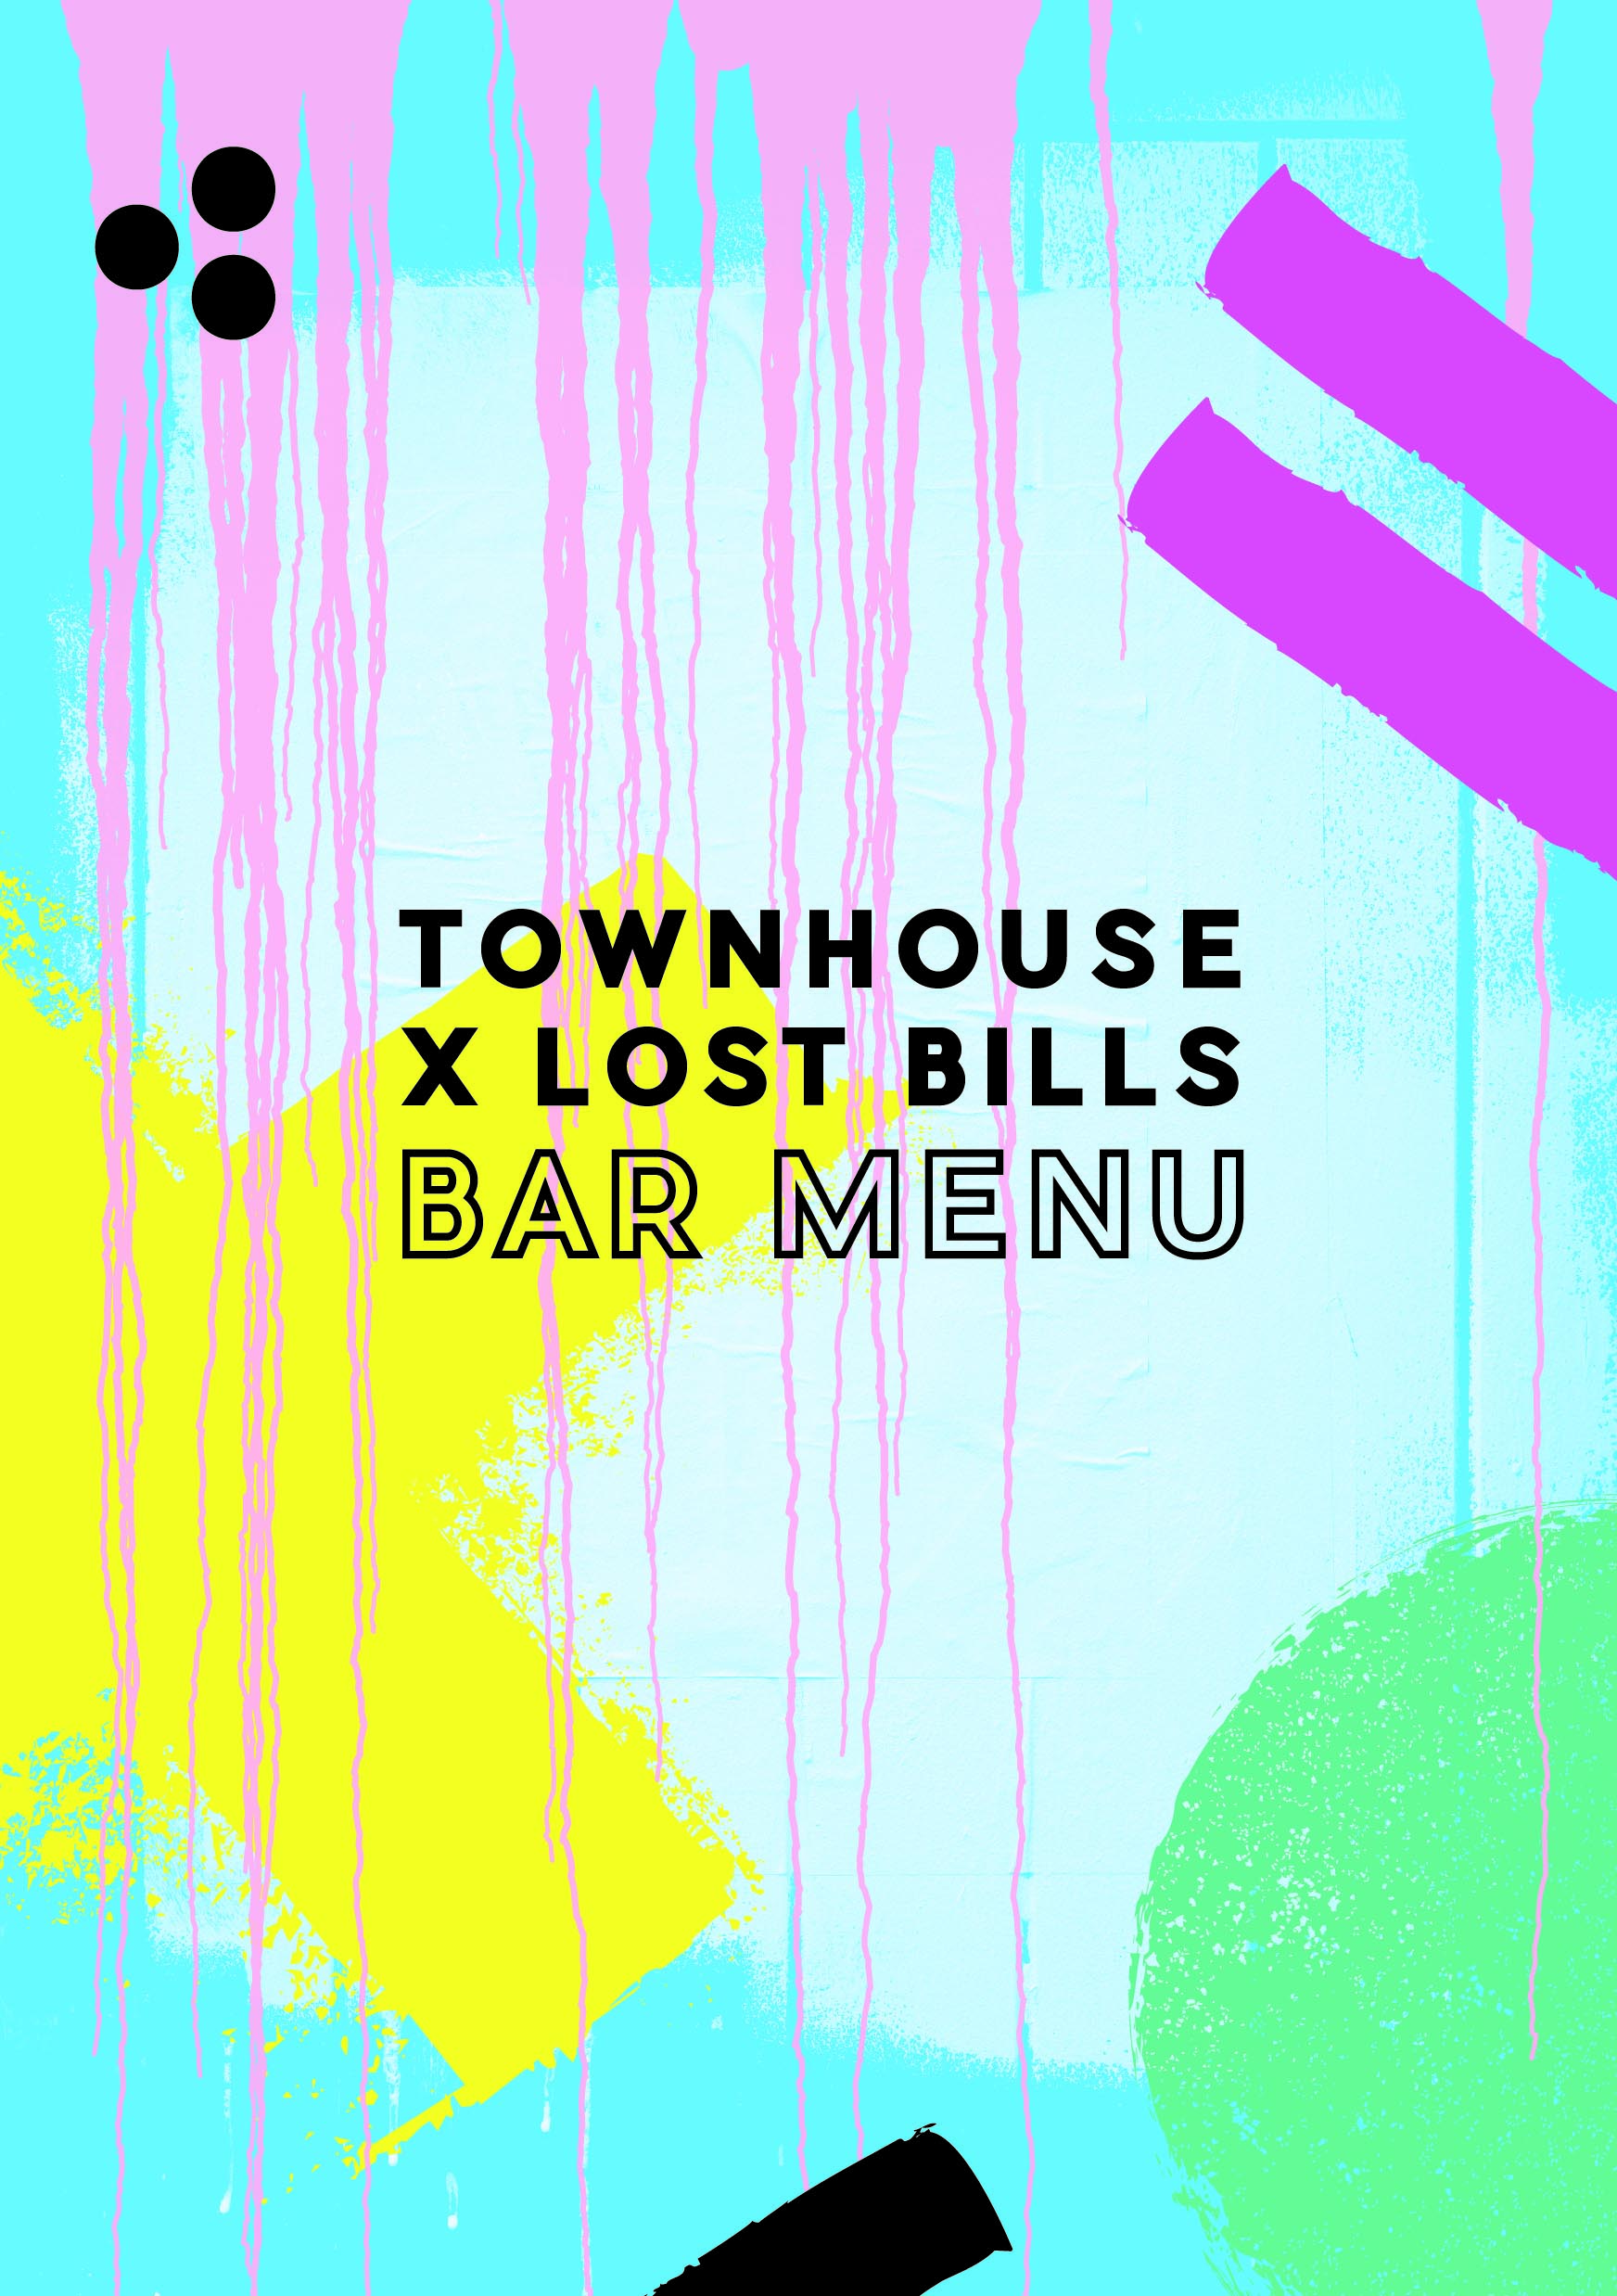 the townhouse & lost bills / bar menu, pirate life tap takeover